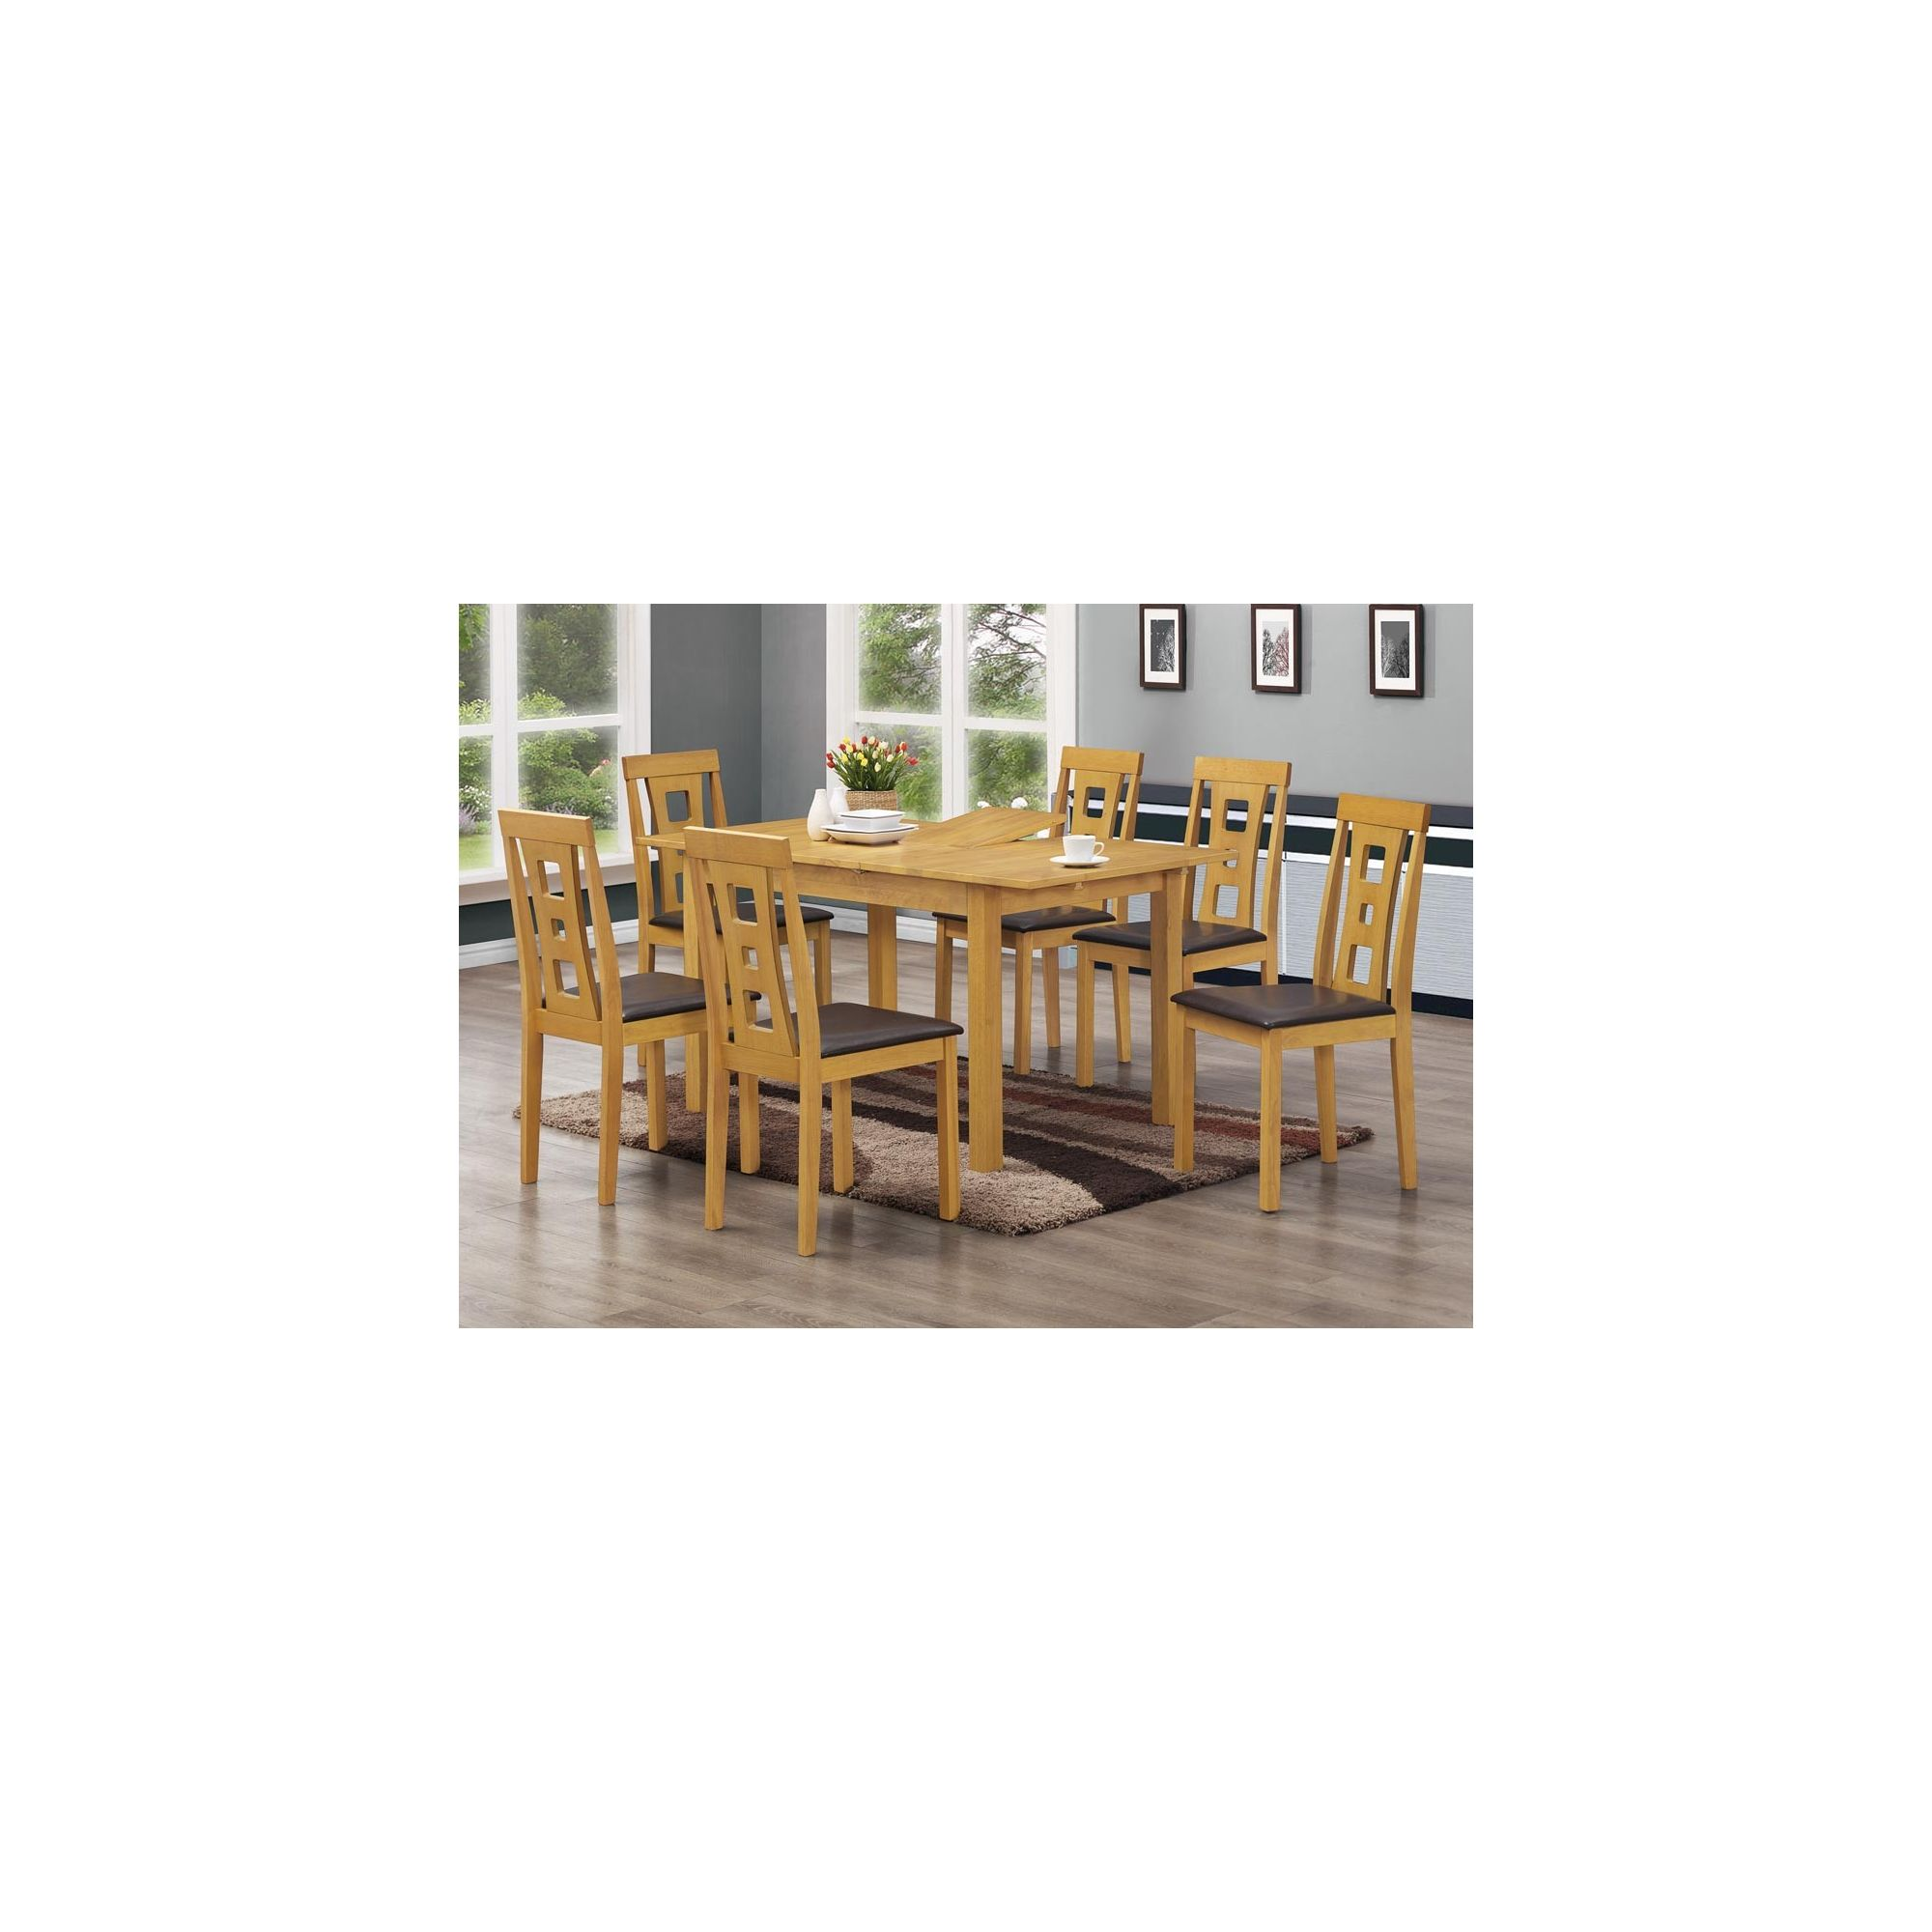 Home Essence Rowan Table and Chair Set at Tesco Direct